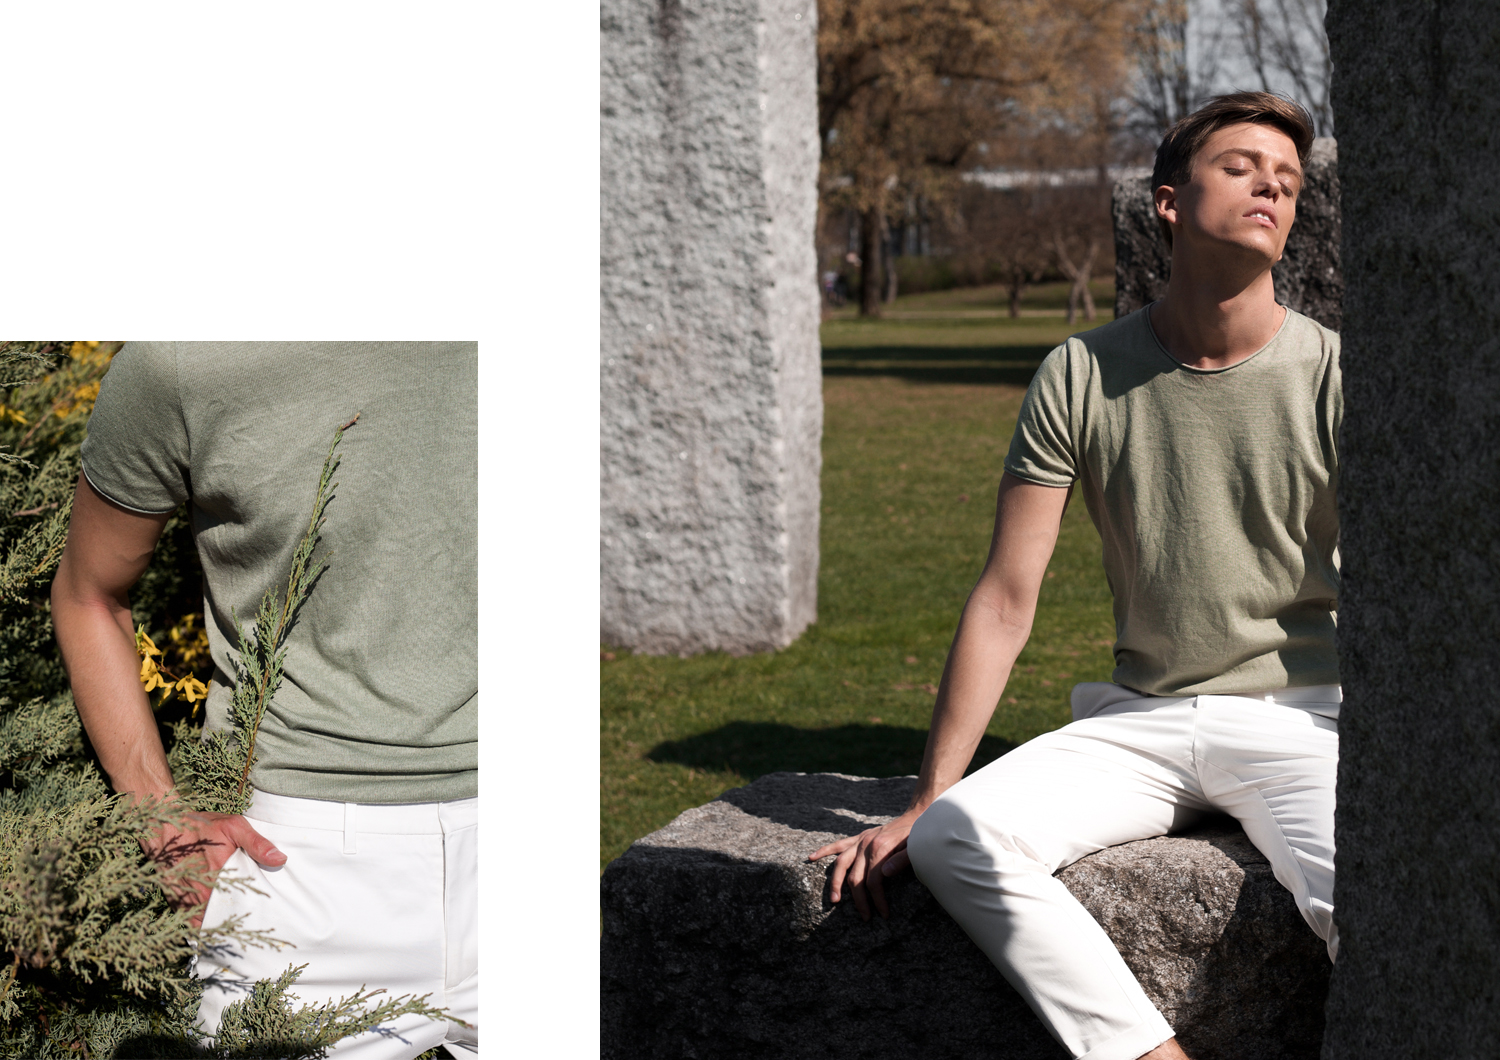 GeorgMallner_Fashion_Look_Style_Menswear_Mensstyle_Outfit_PastelColor_White_Trousers_Editorial_Magazin_Fashionisto_